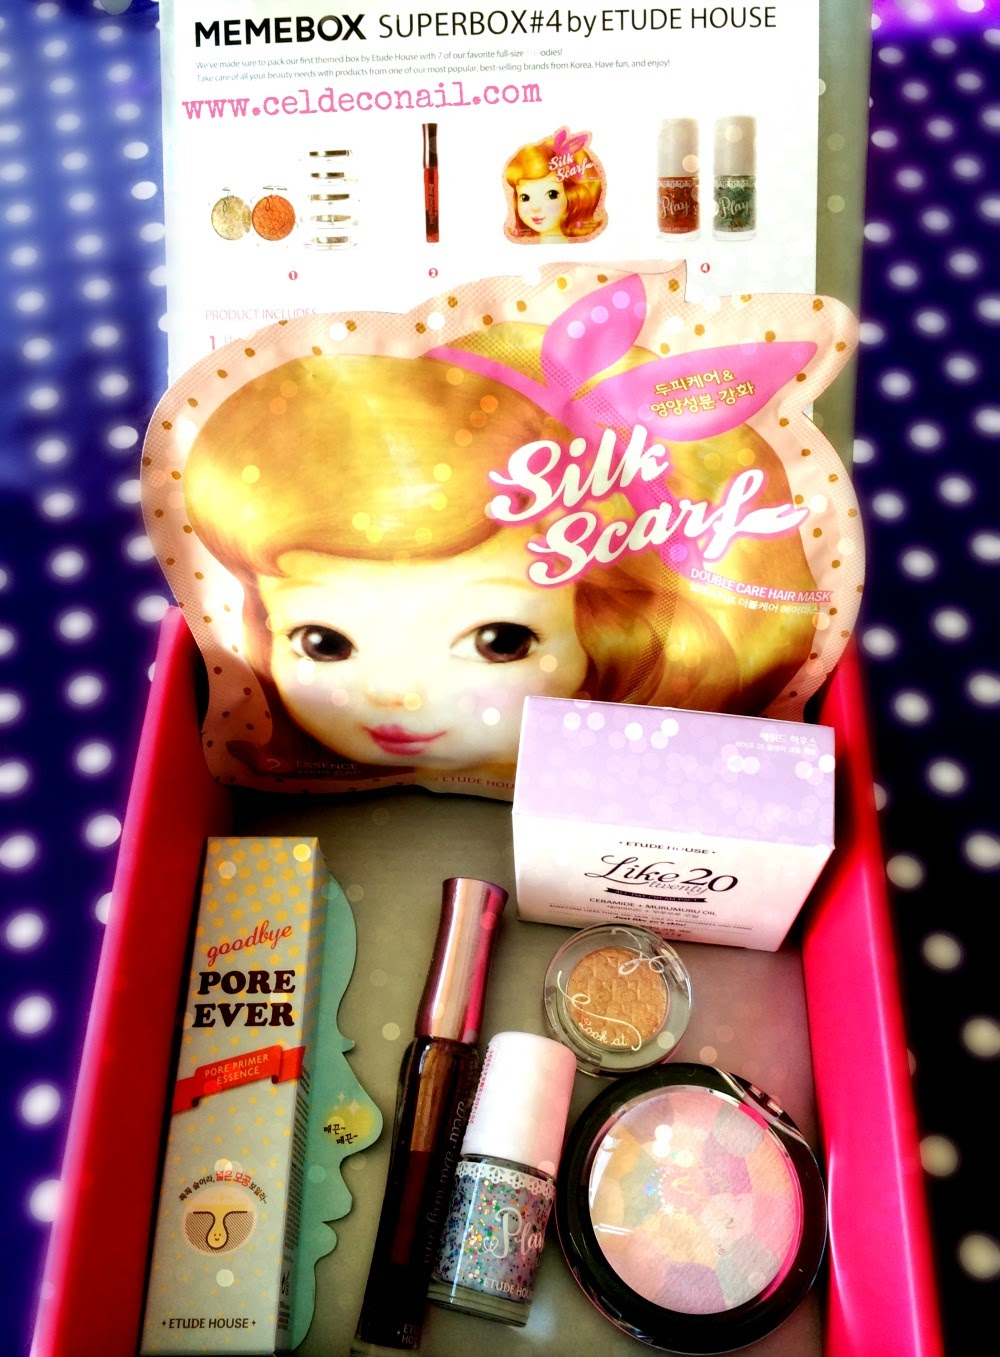 Etude House superbox memebox